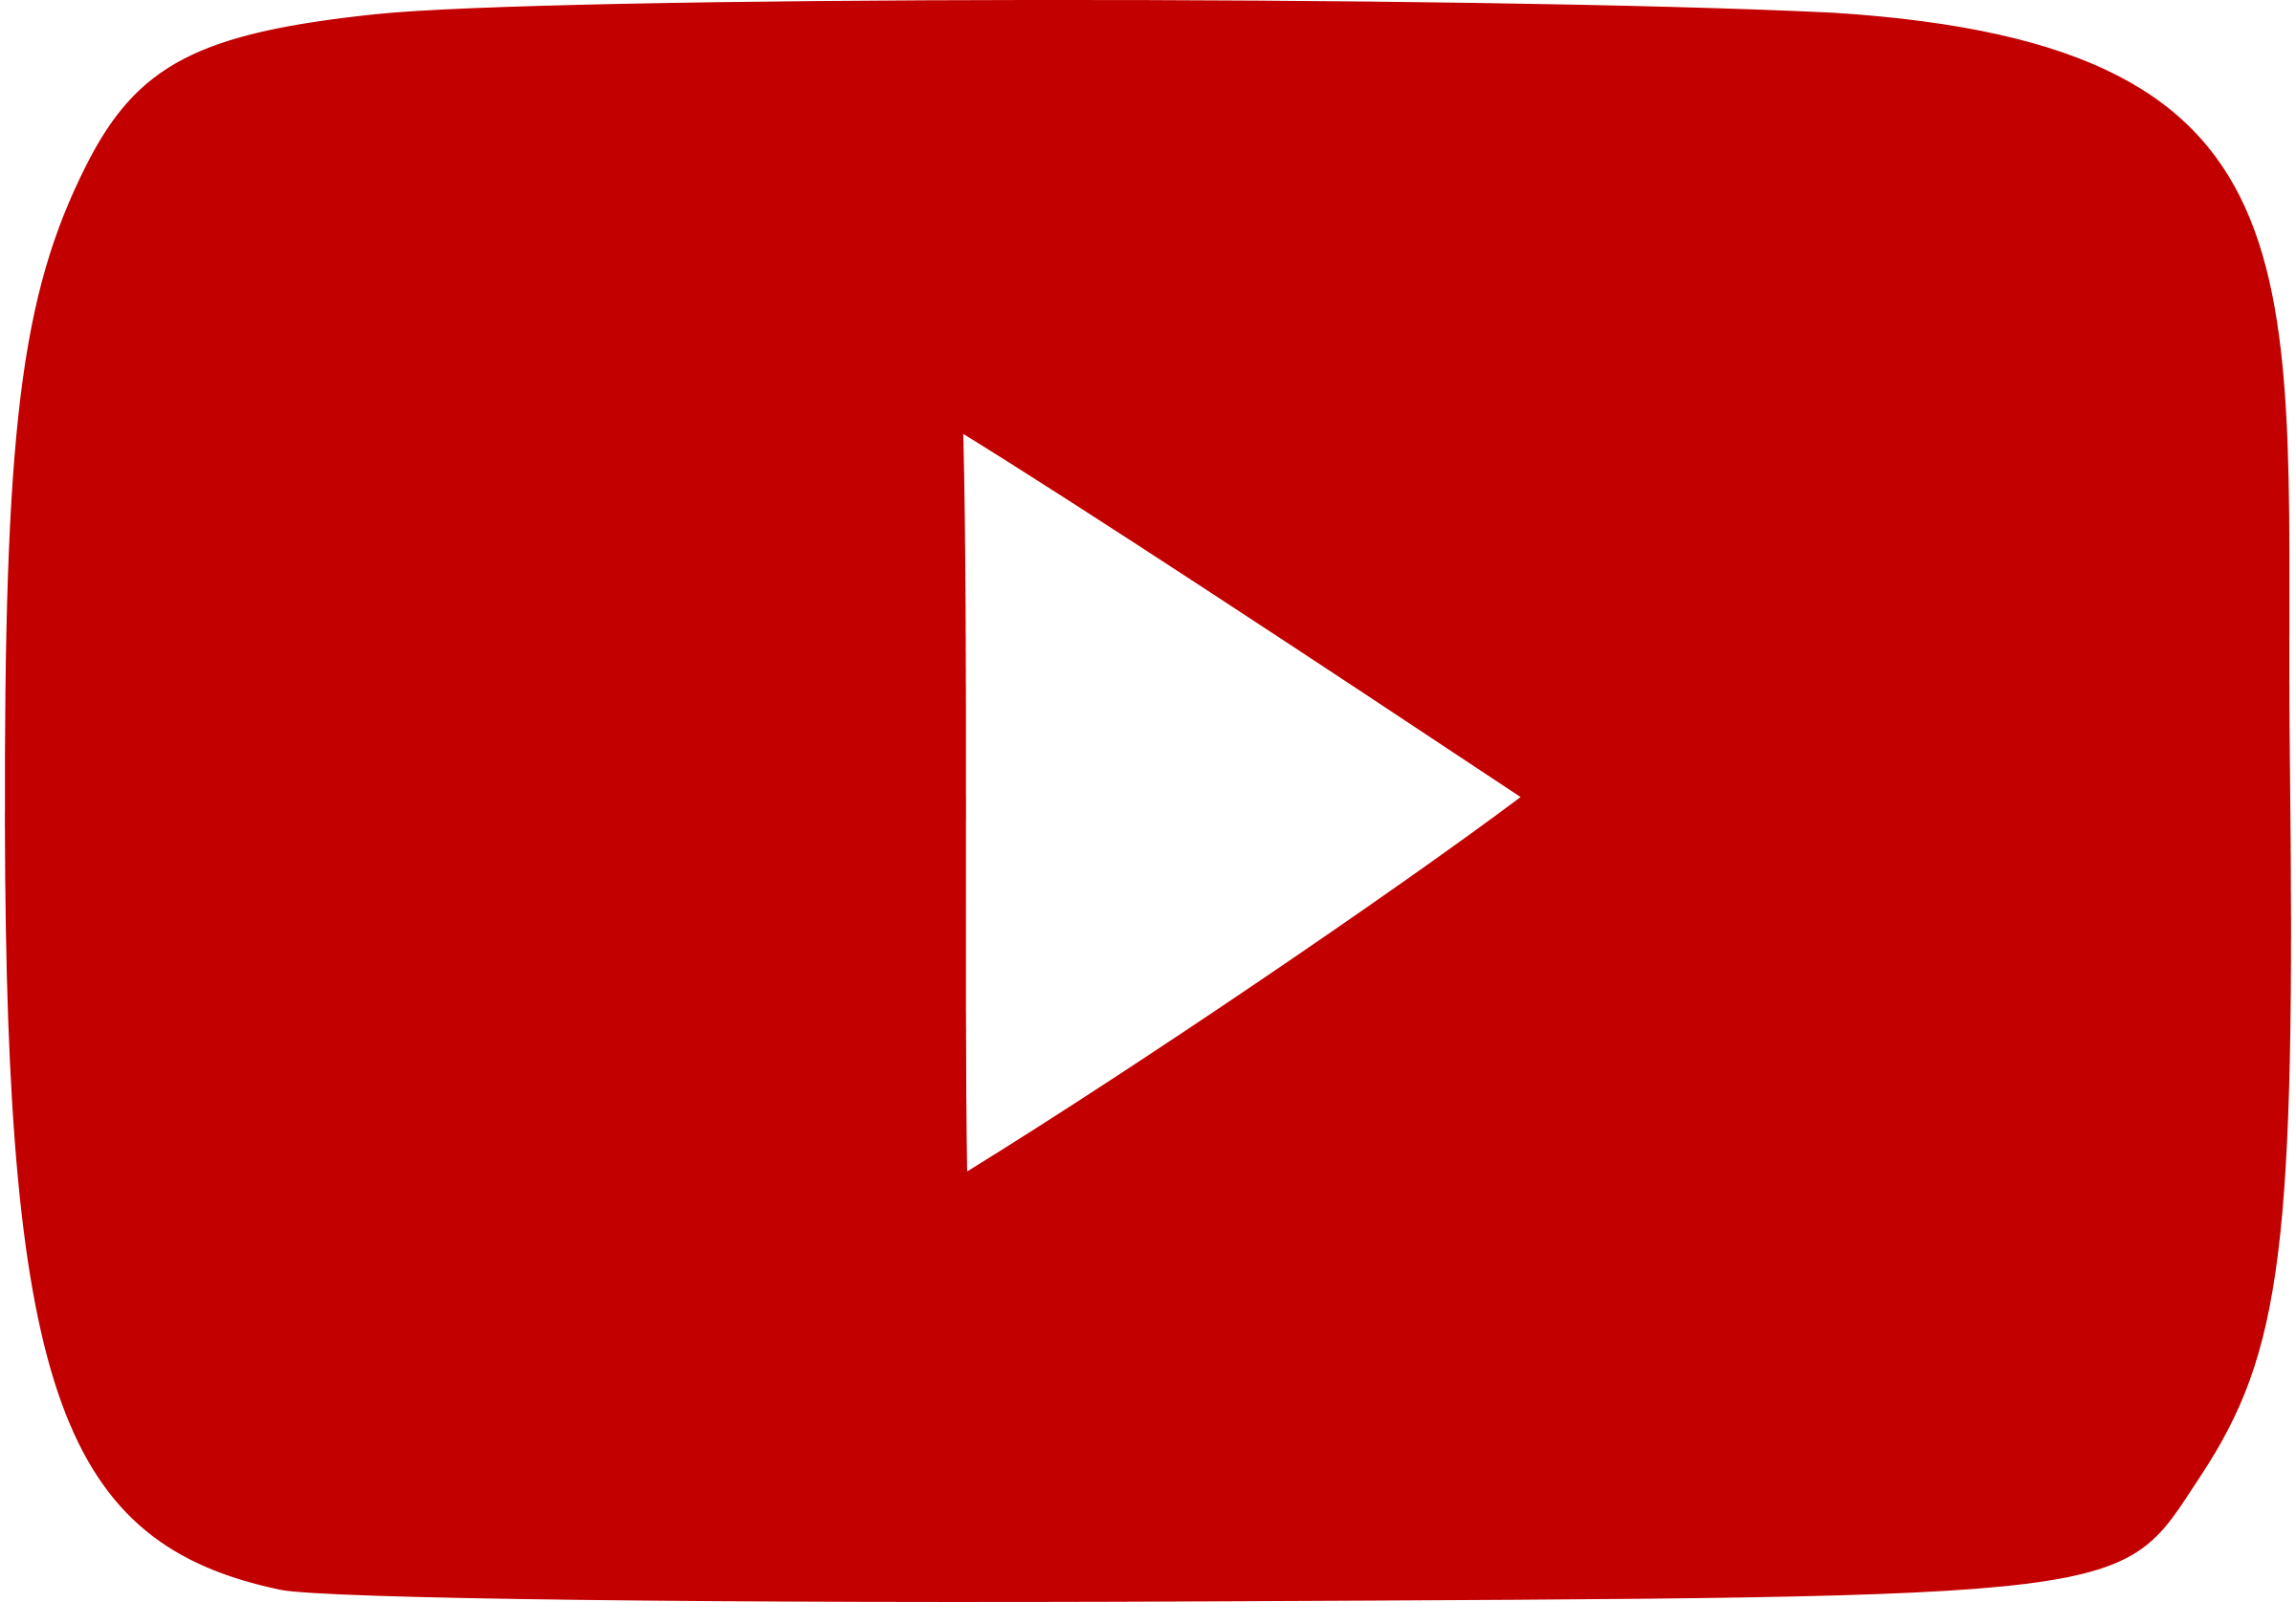 Play Button PNG - 23747